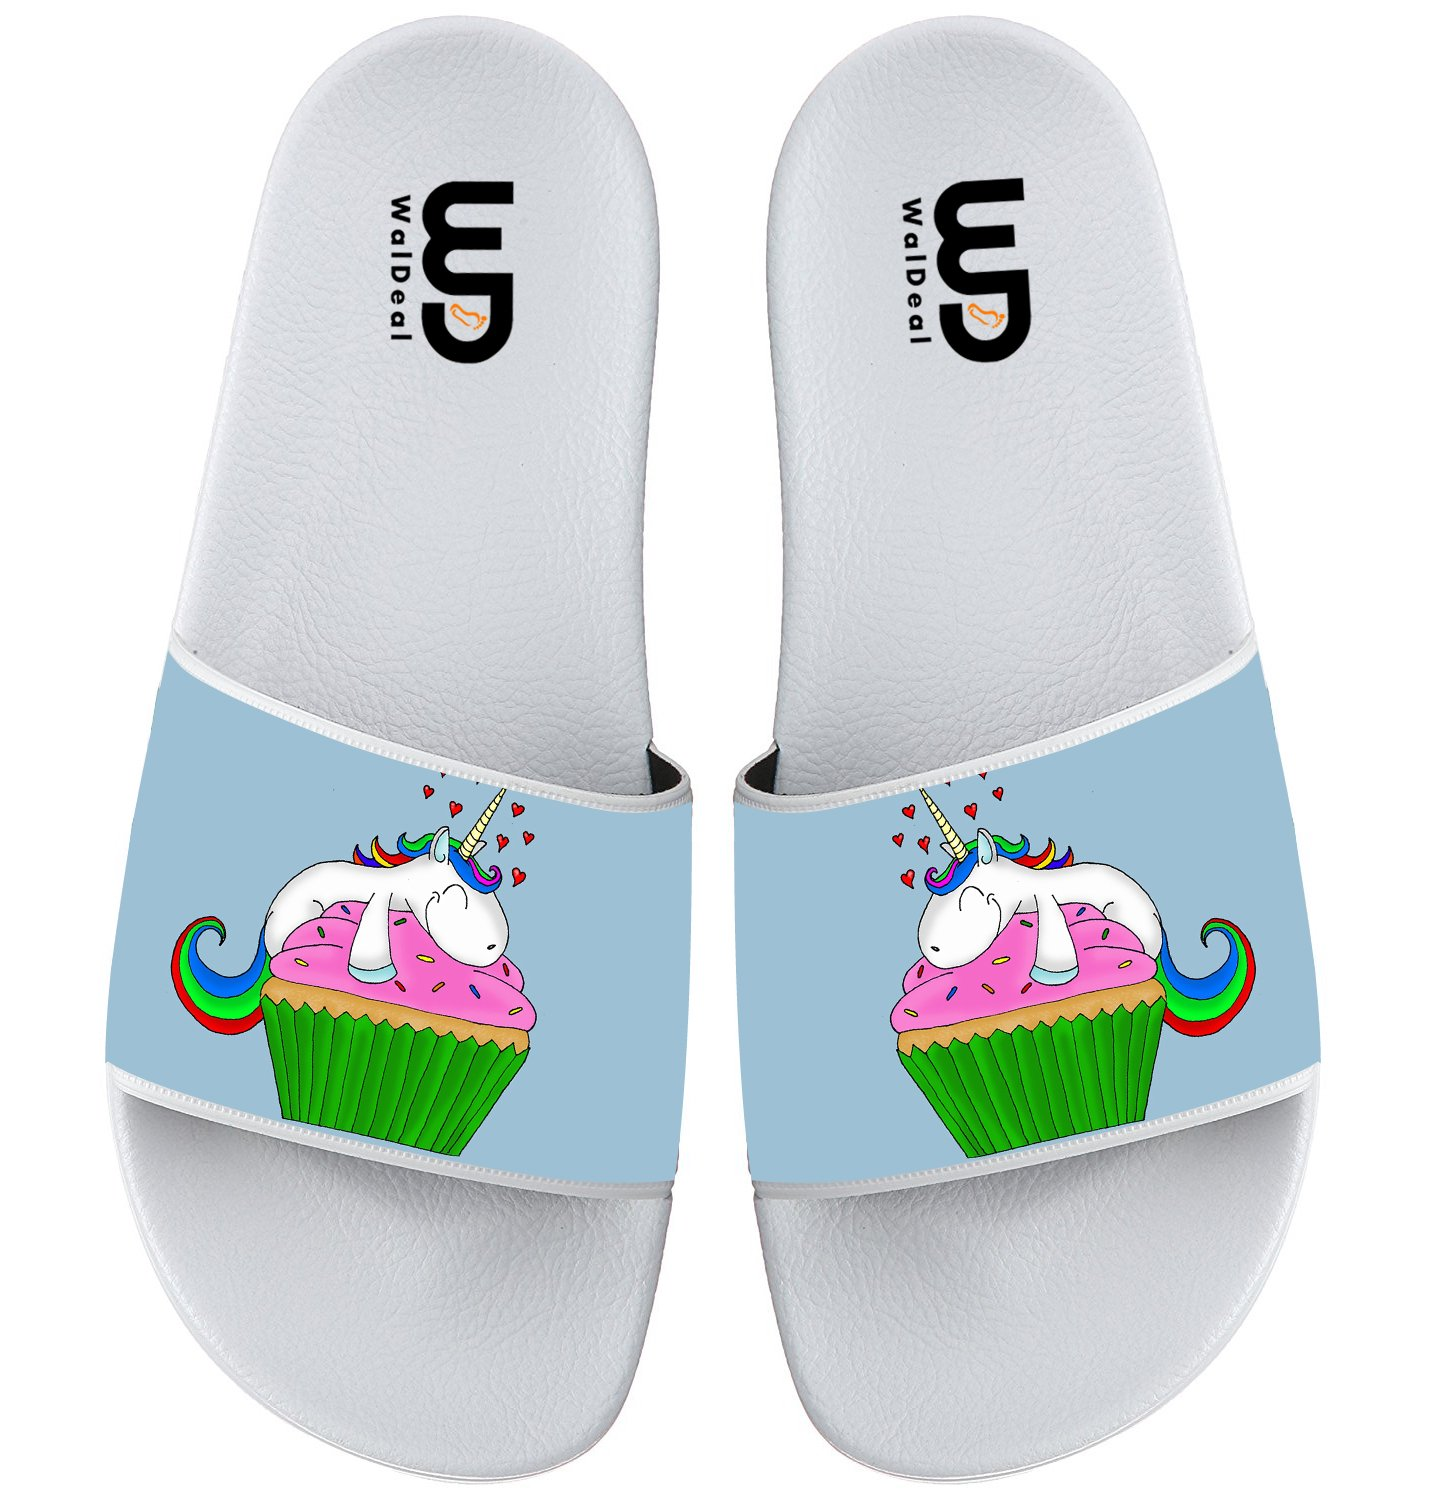 Cartoon Cute Cupcake Unicorn Summer Slide Slippers For Boy Girl Outdoor Beach Sandal Shoes size 12